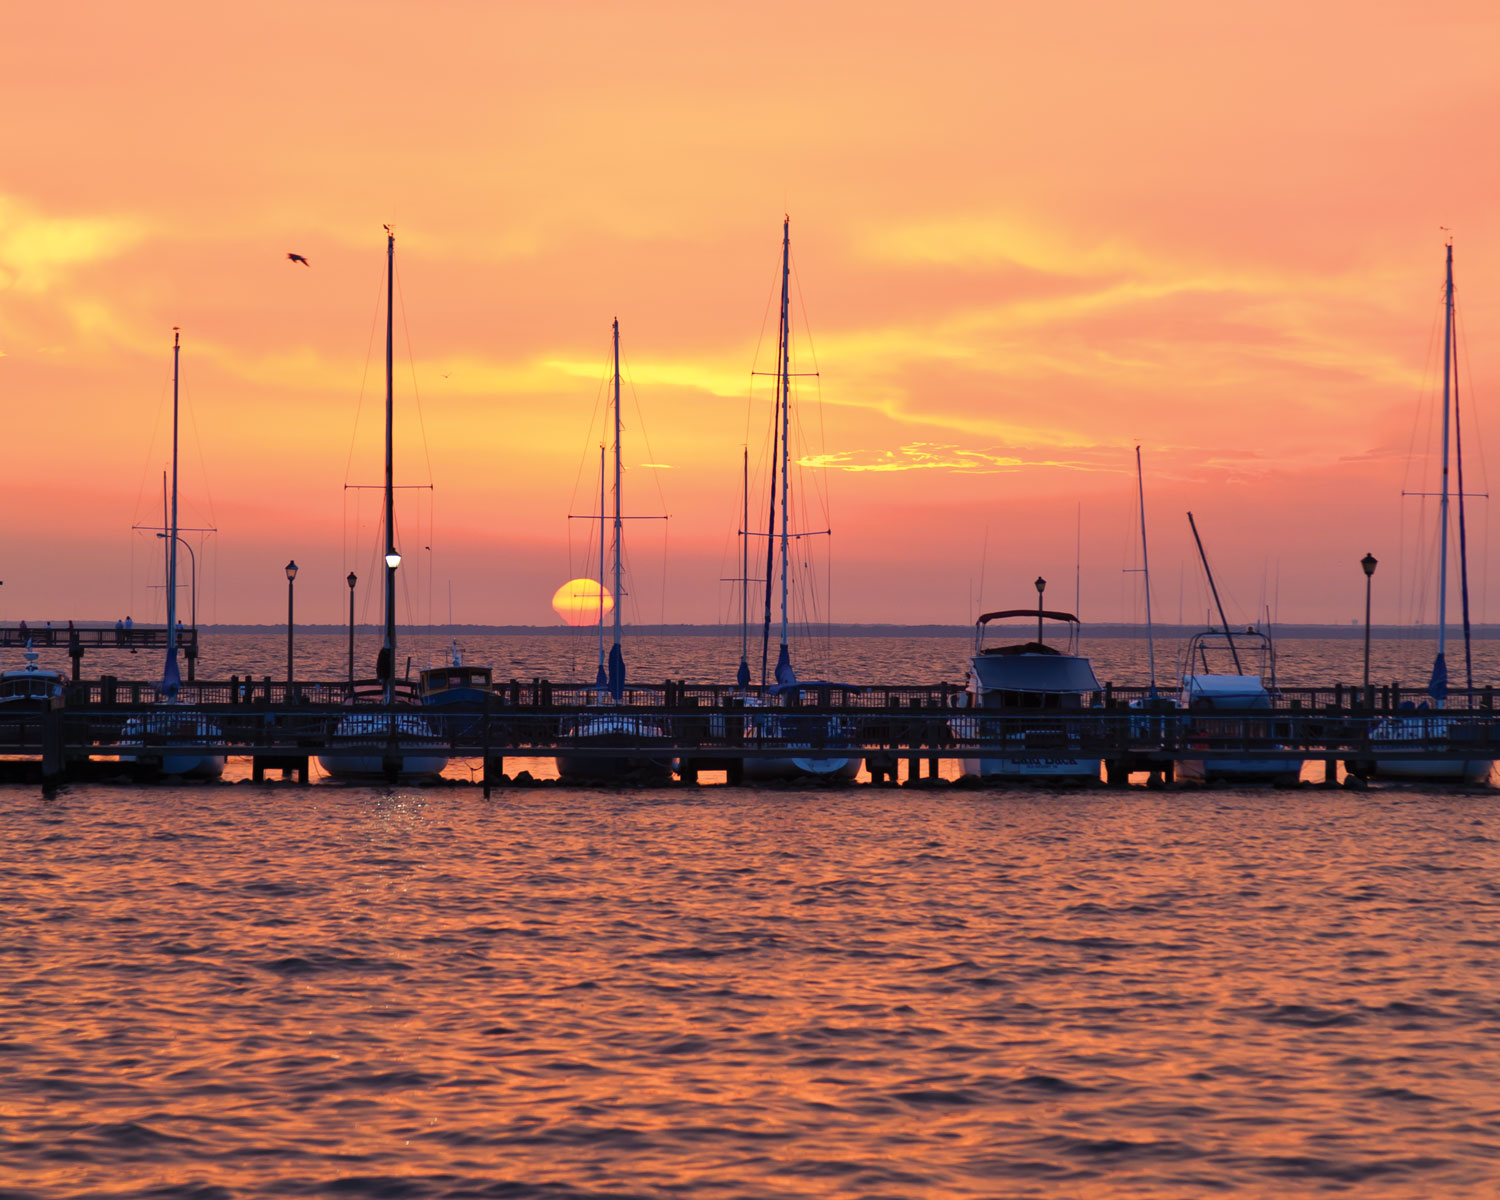 A photo of the bay at sunset in Fairhope, Alabama